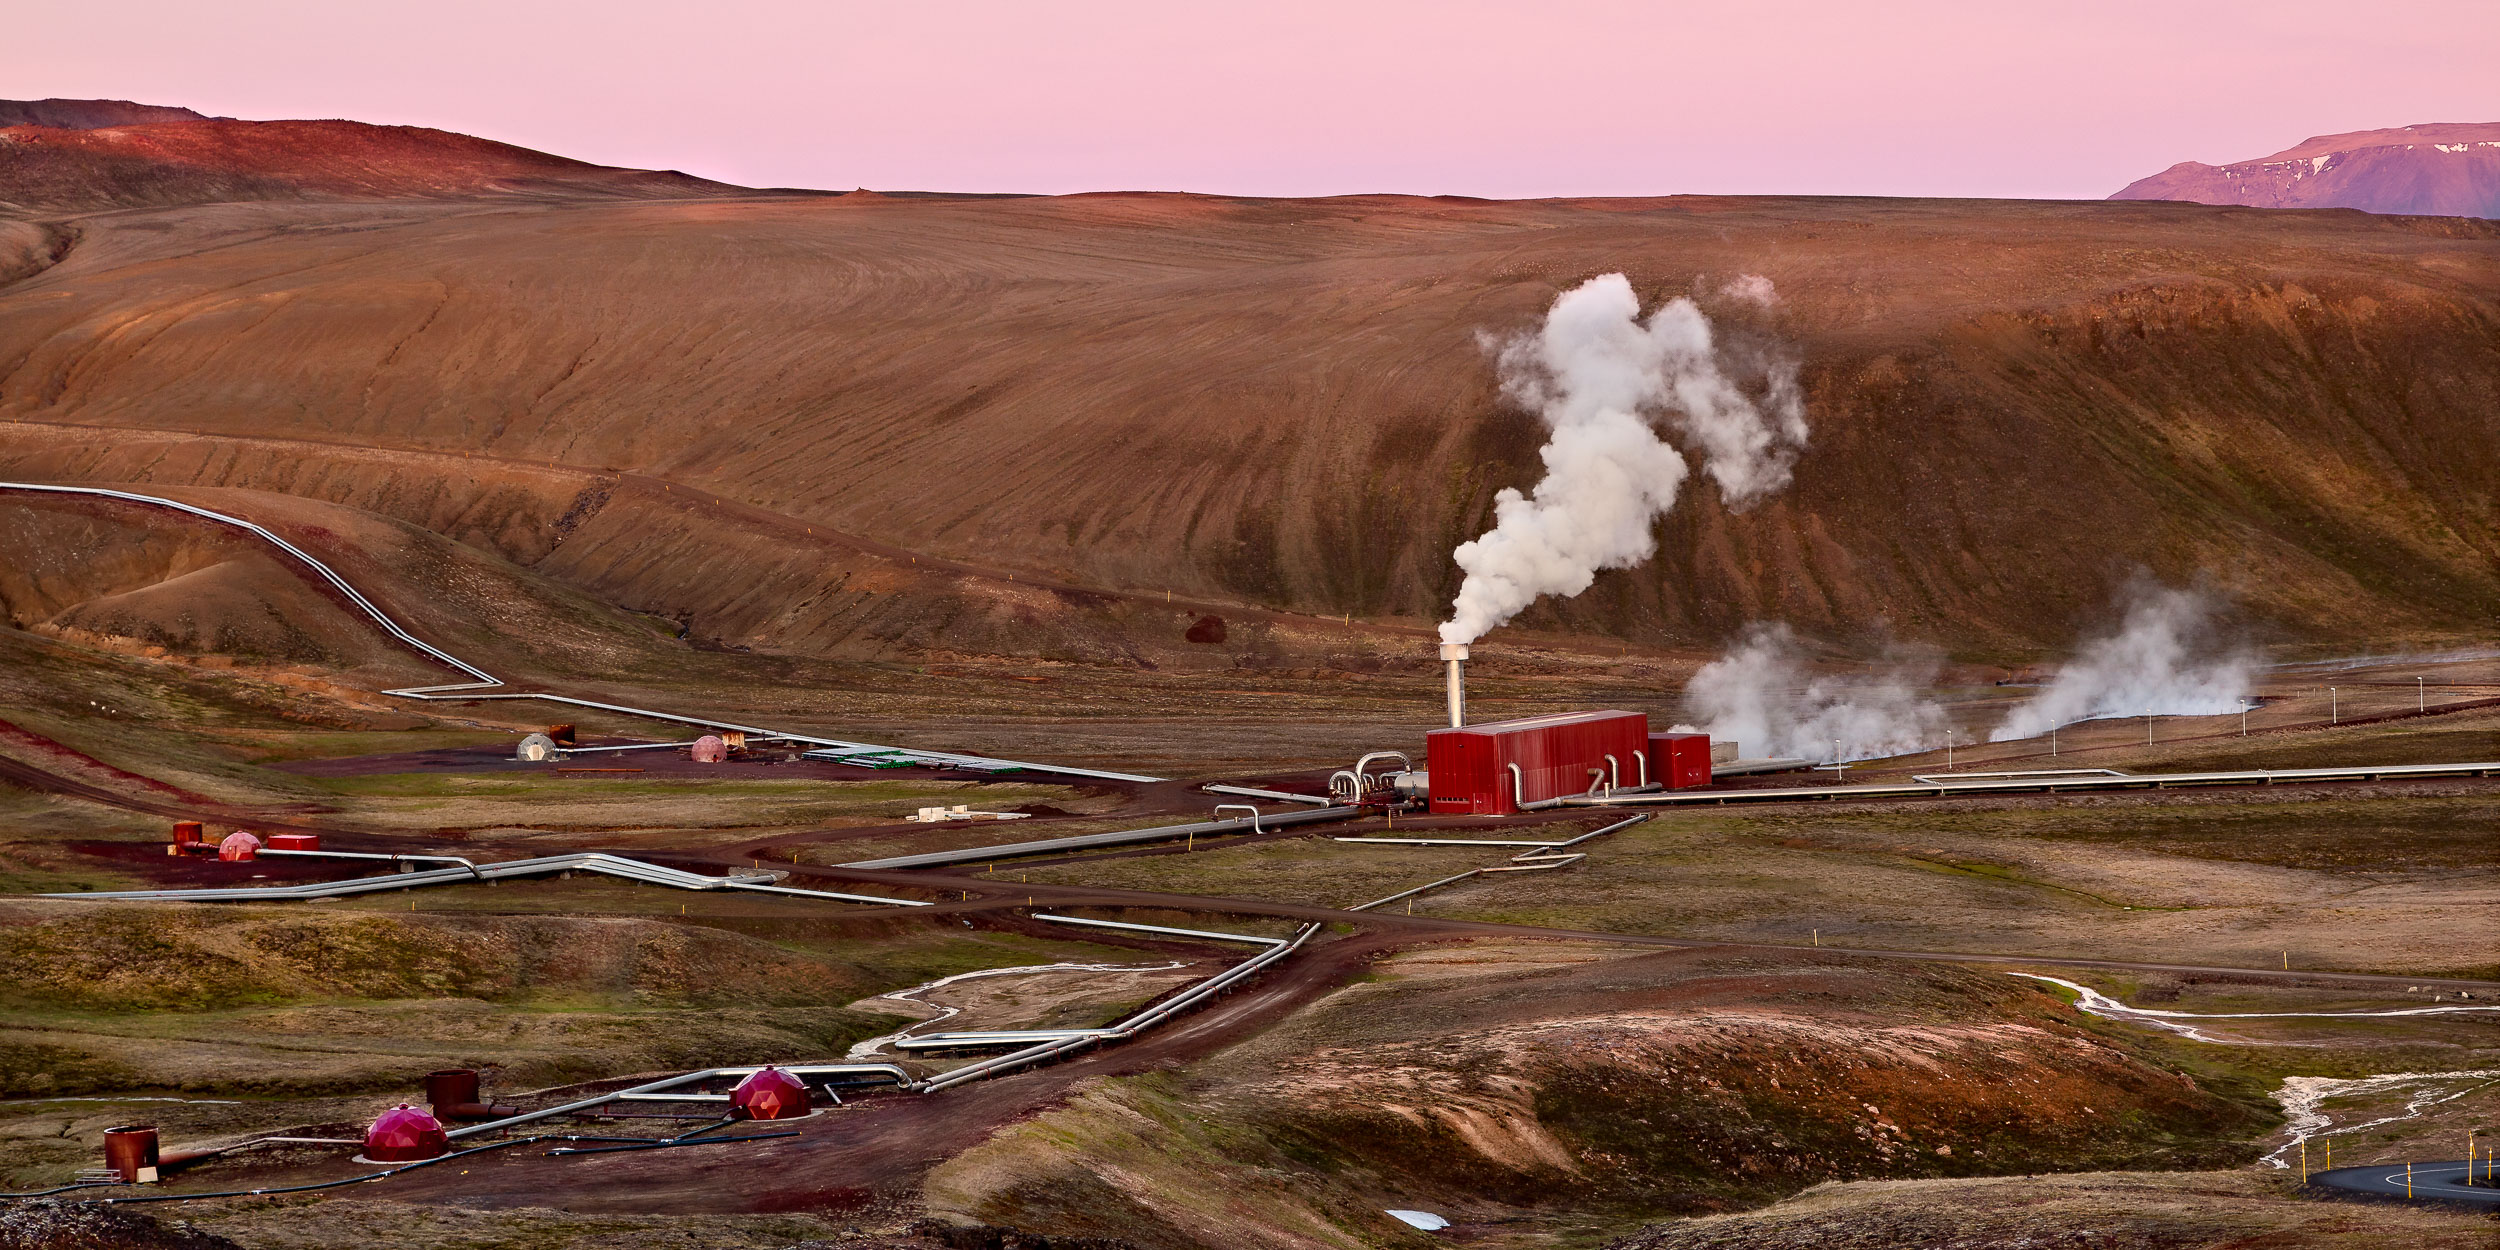 A  sunset view  of the  Krafla Geothermal Power Station  near  Myvatn  in northern  Iceland .